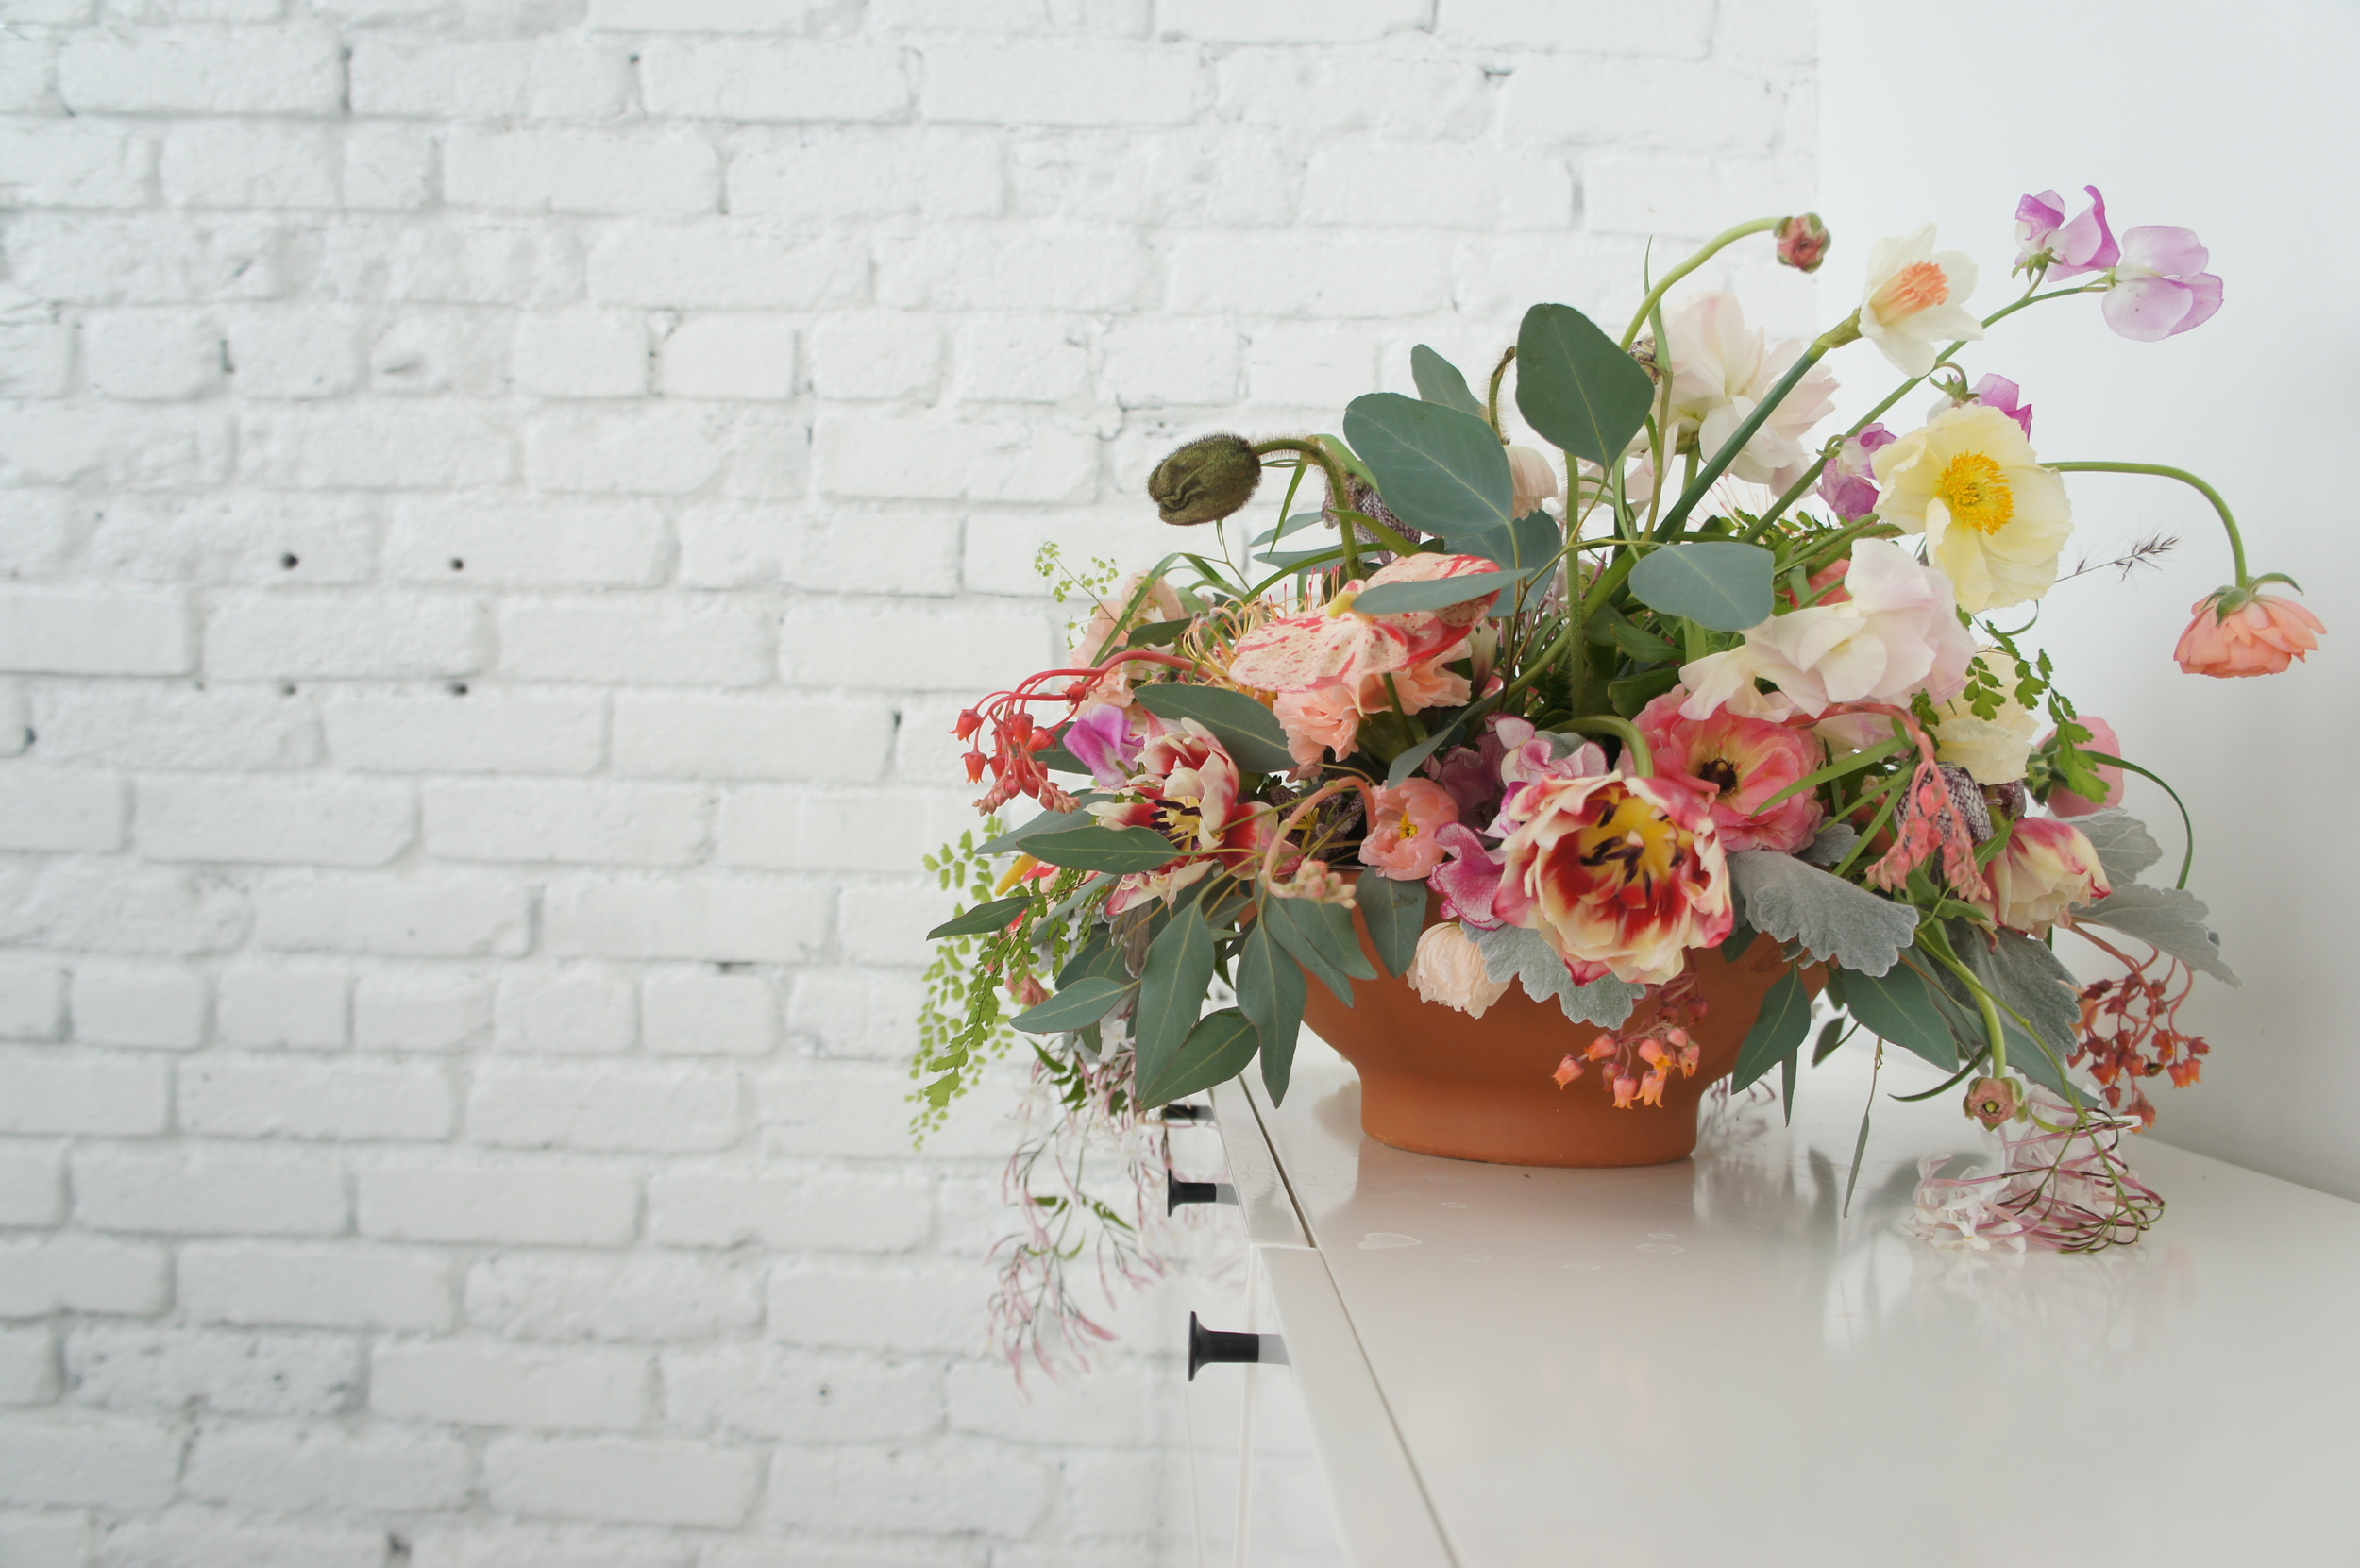 Tablecentre arrangement in low bowl with soft pink flowers